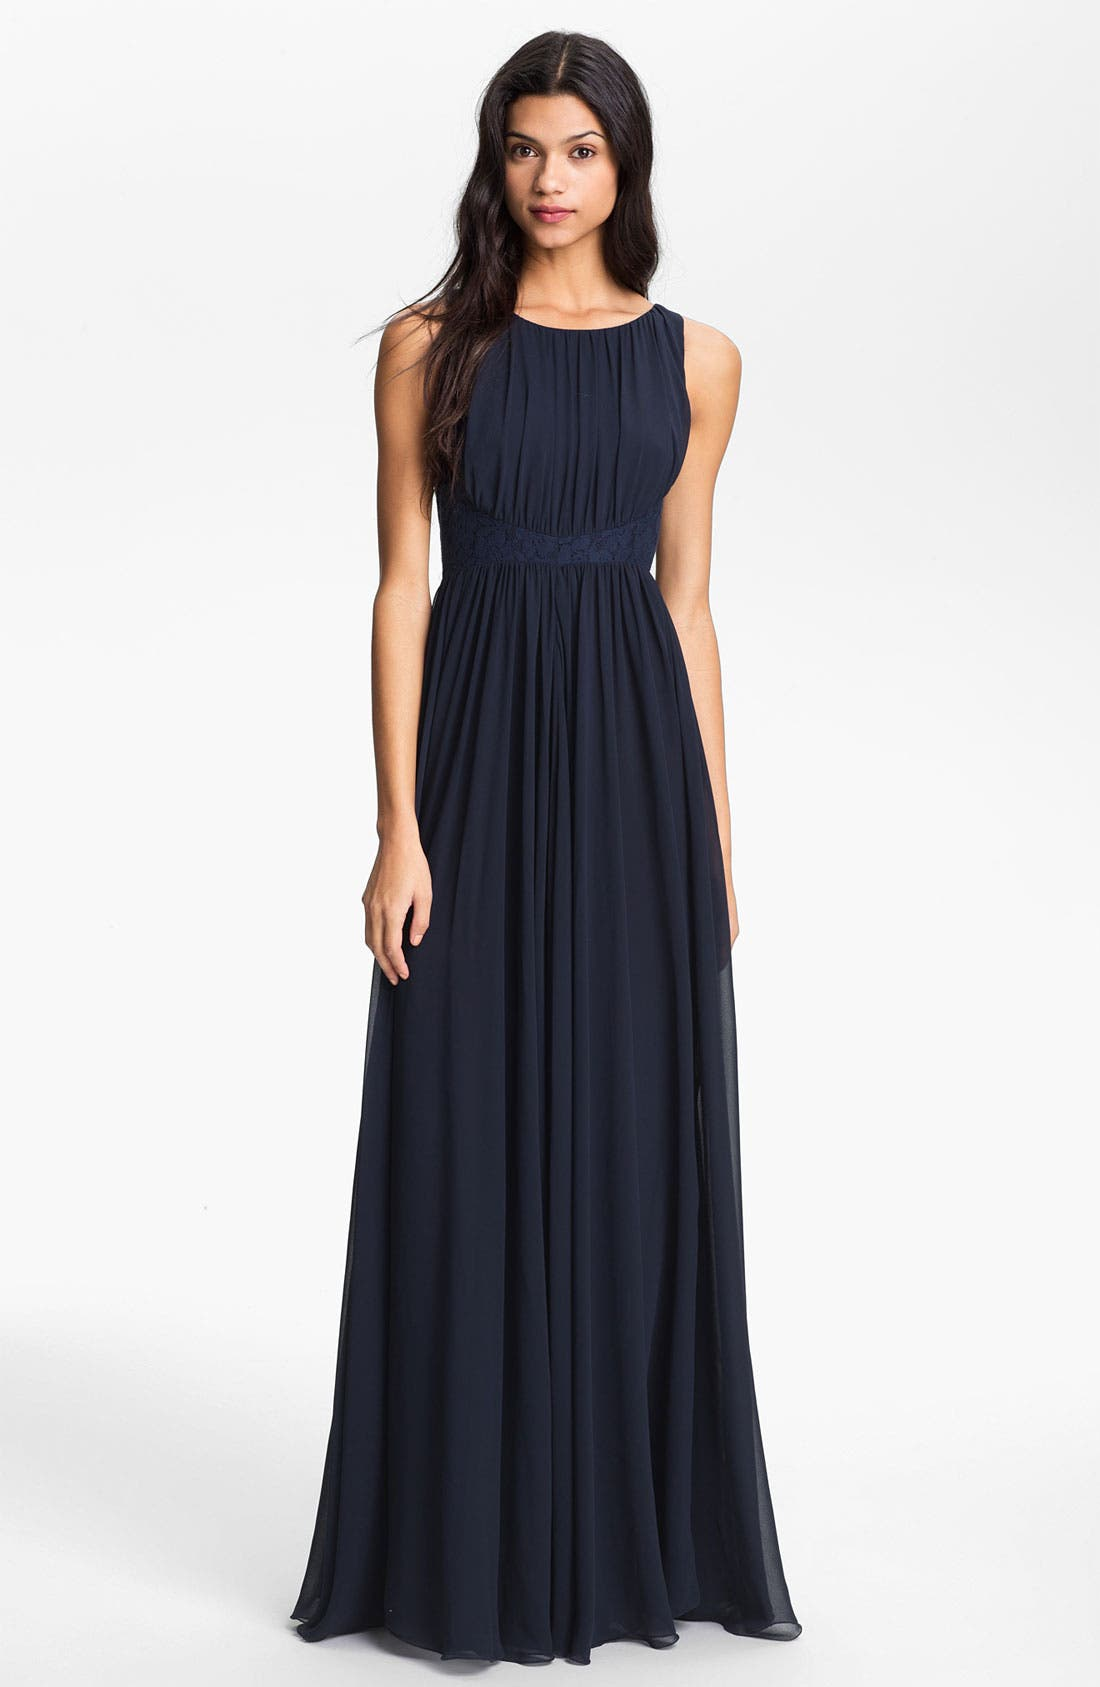 Alternate Image 1 Selected - French Connection 'Summer Spell' Chiffon Maxi Dress